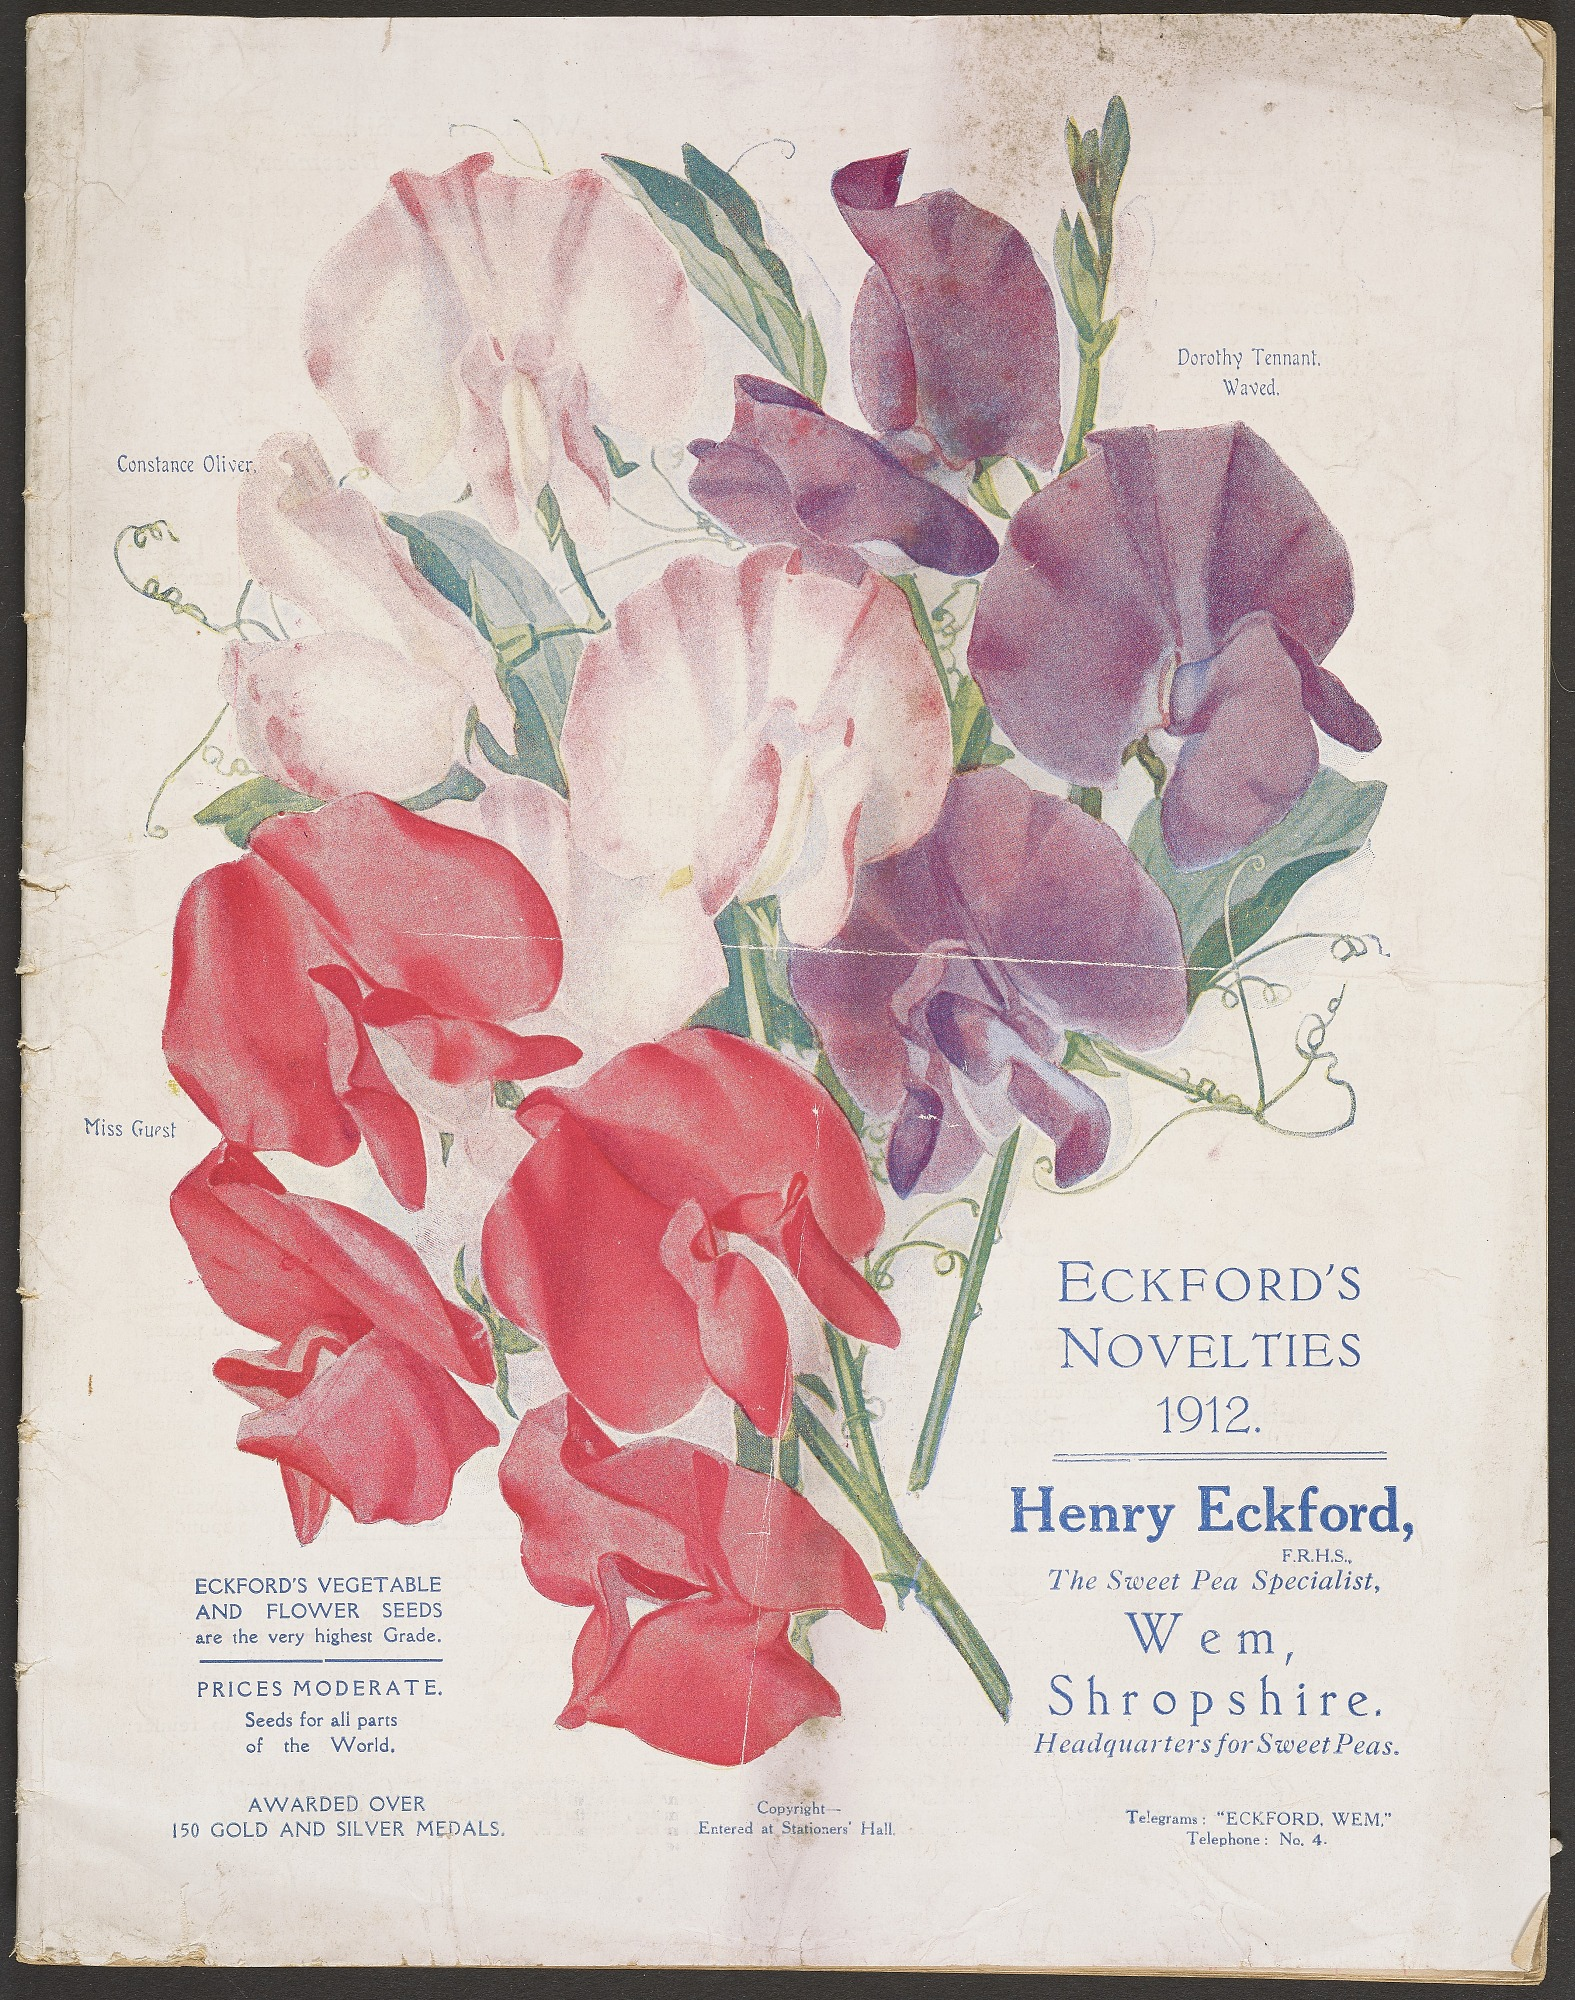 Henry Eckford, Eckford's Novelties for 1912